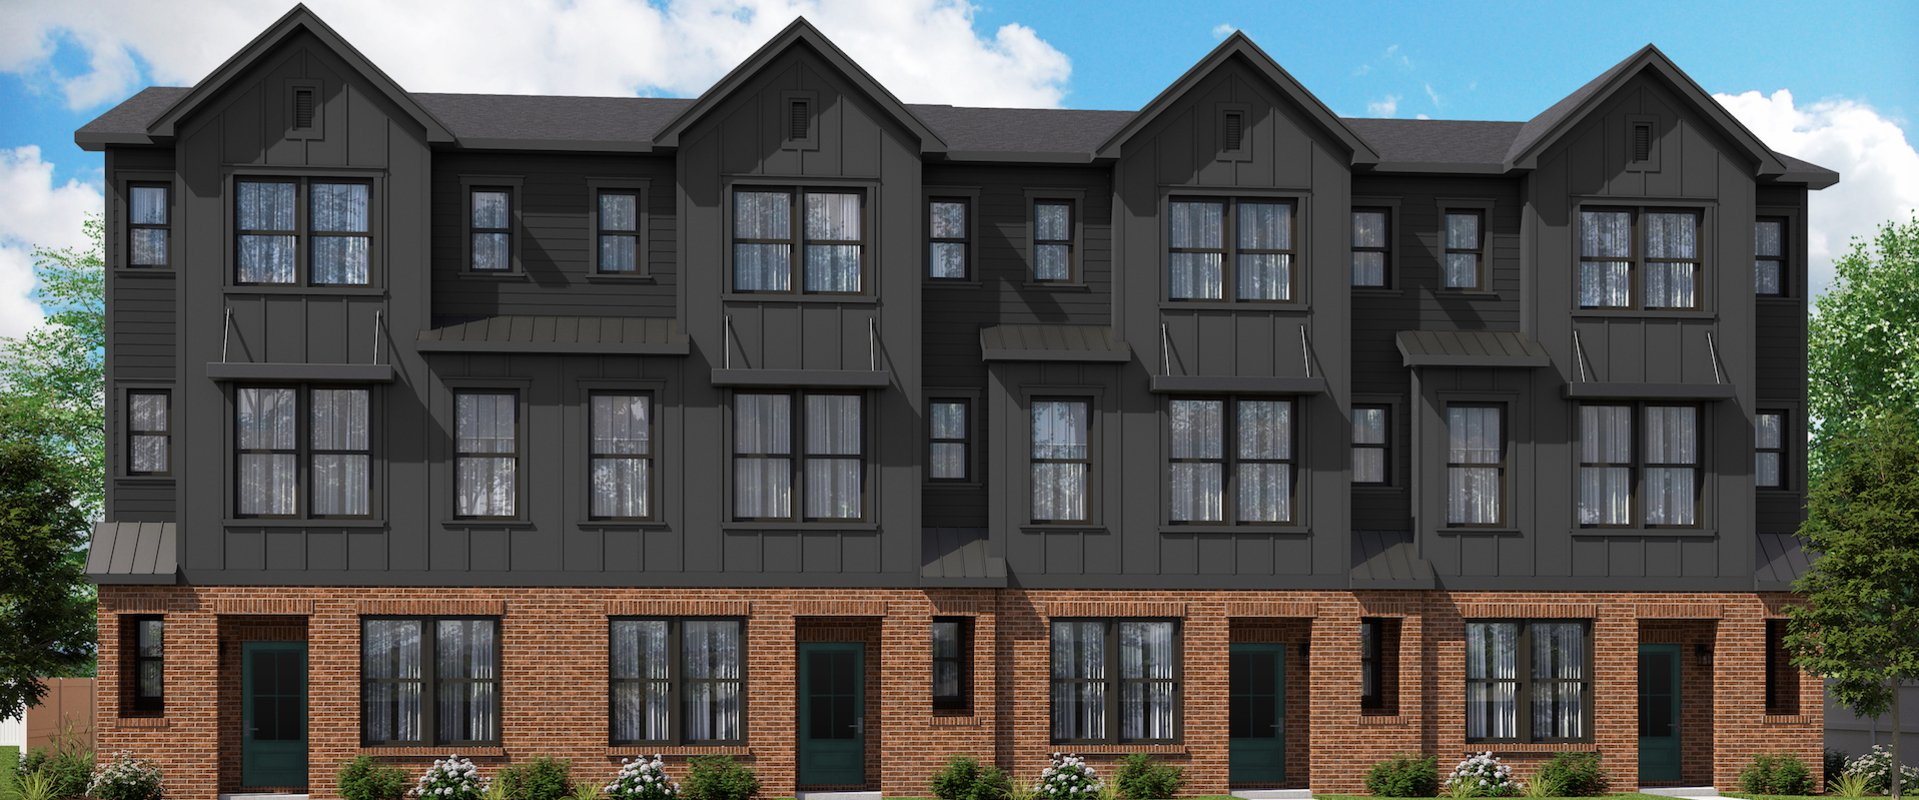 Northside Townhomes